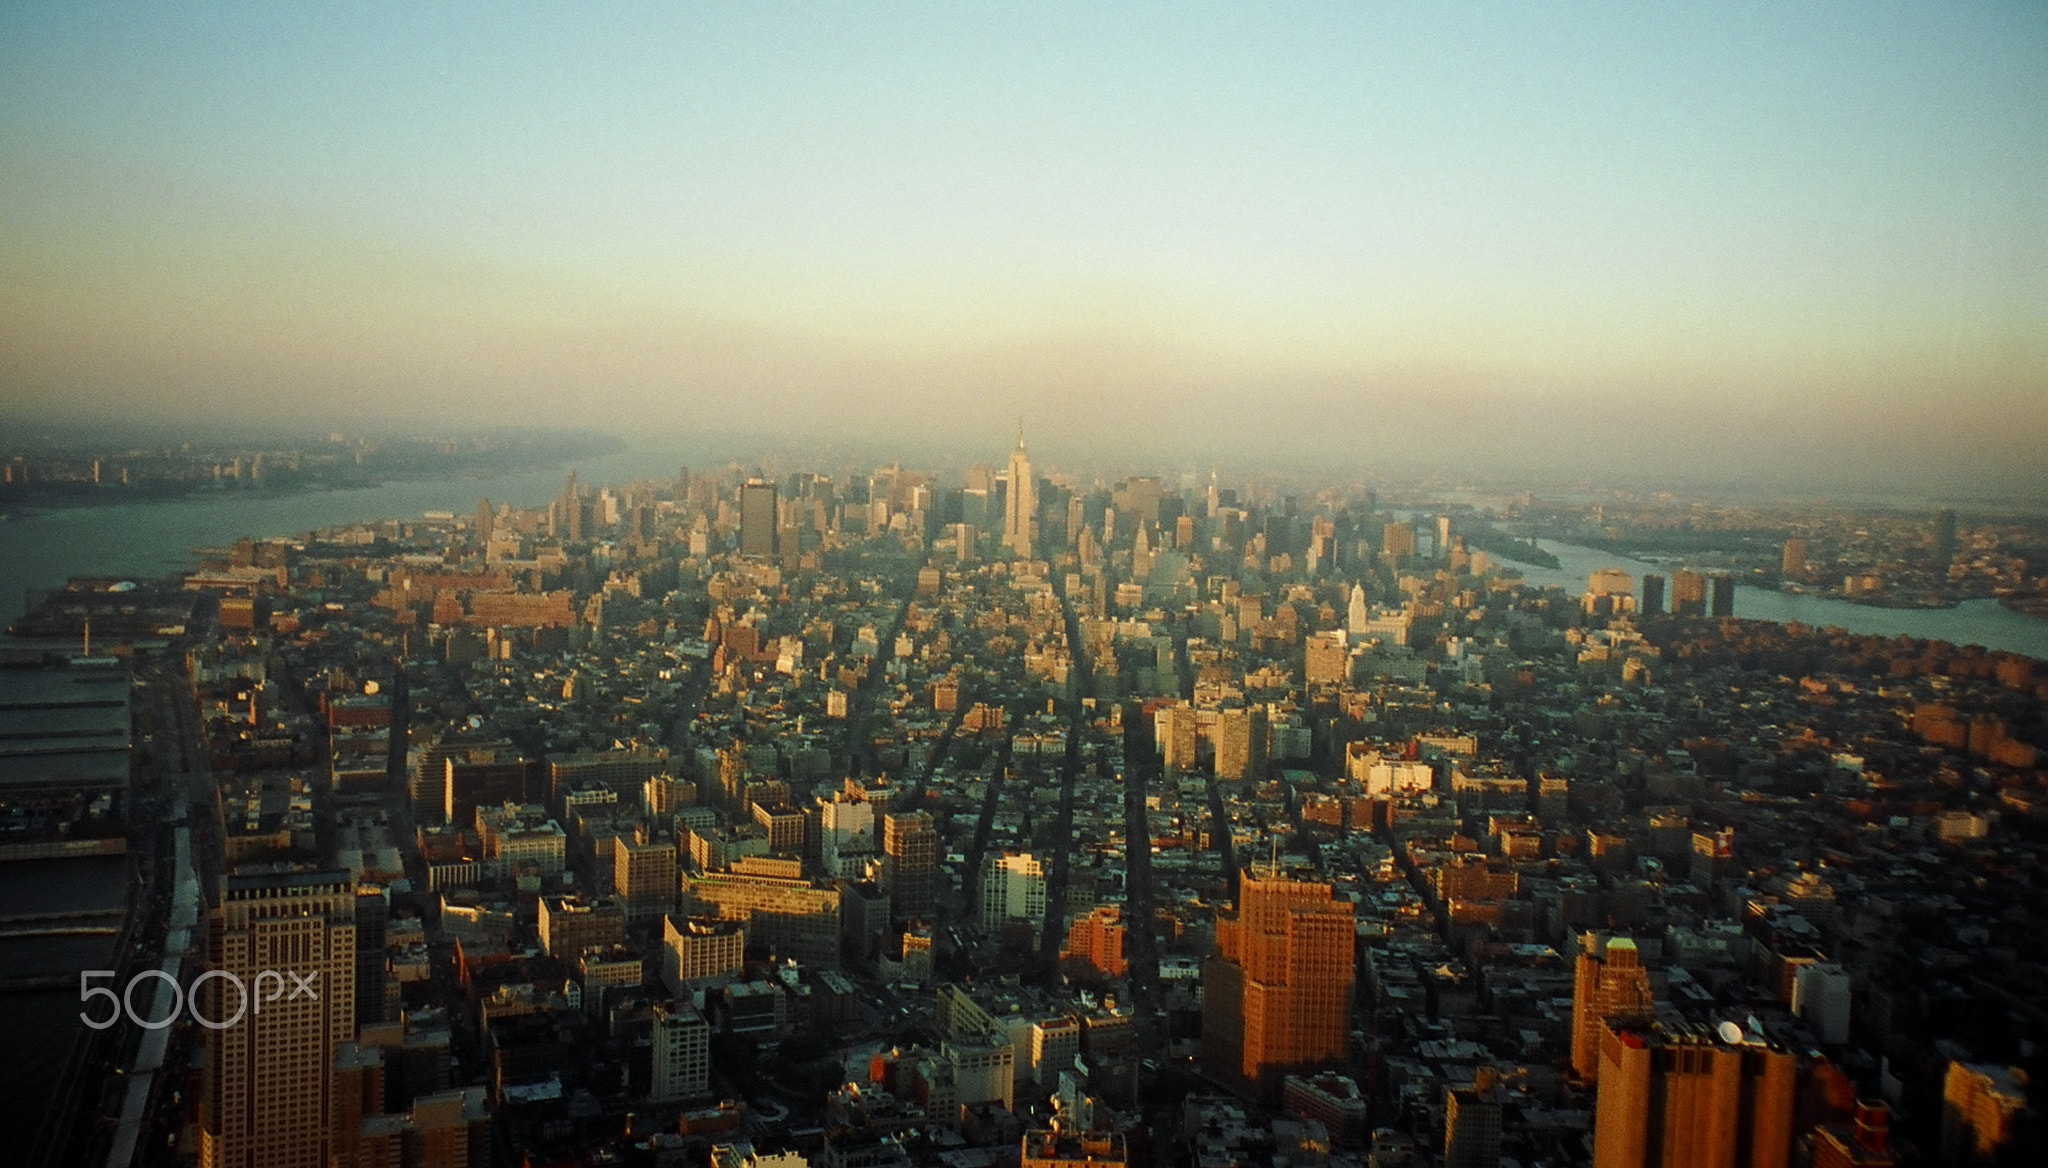 Before 9/11- view from World Trade Center